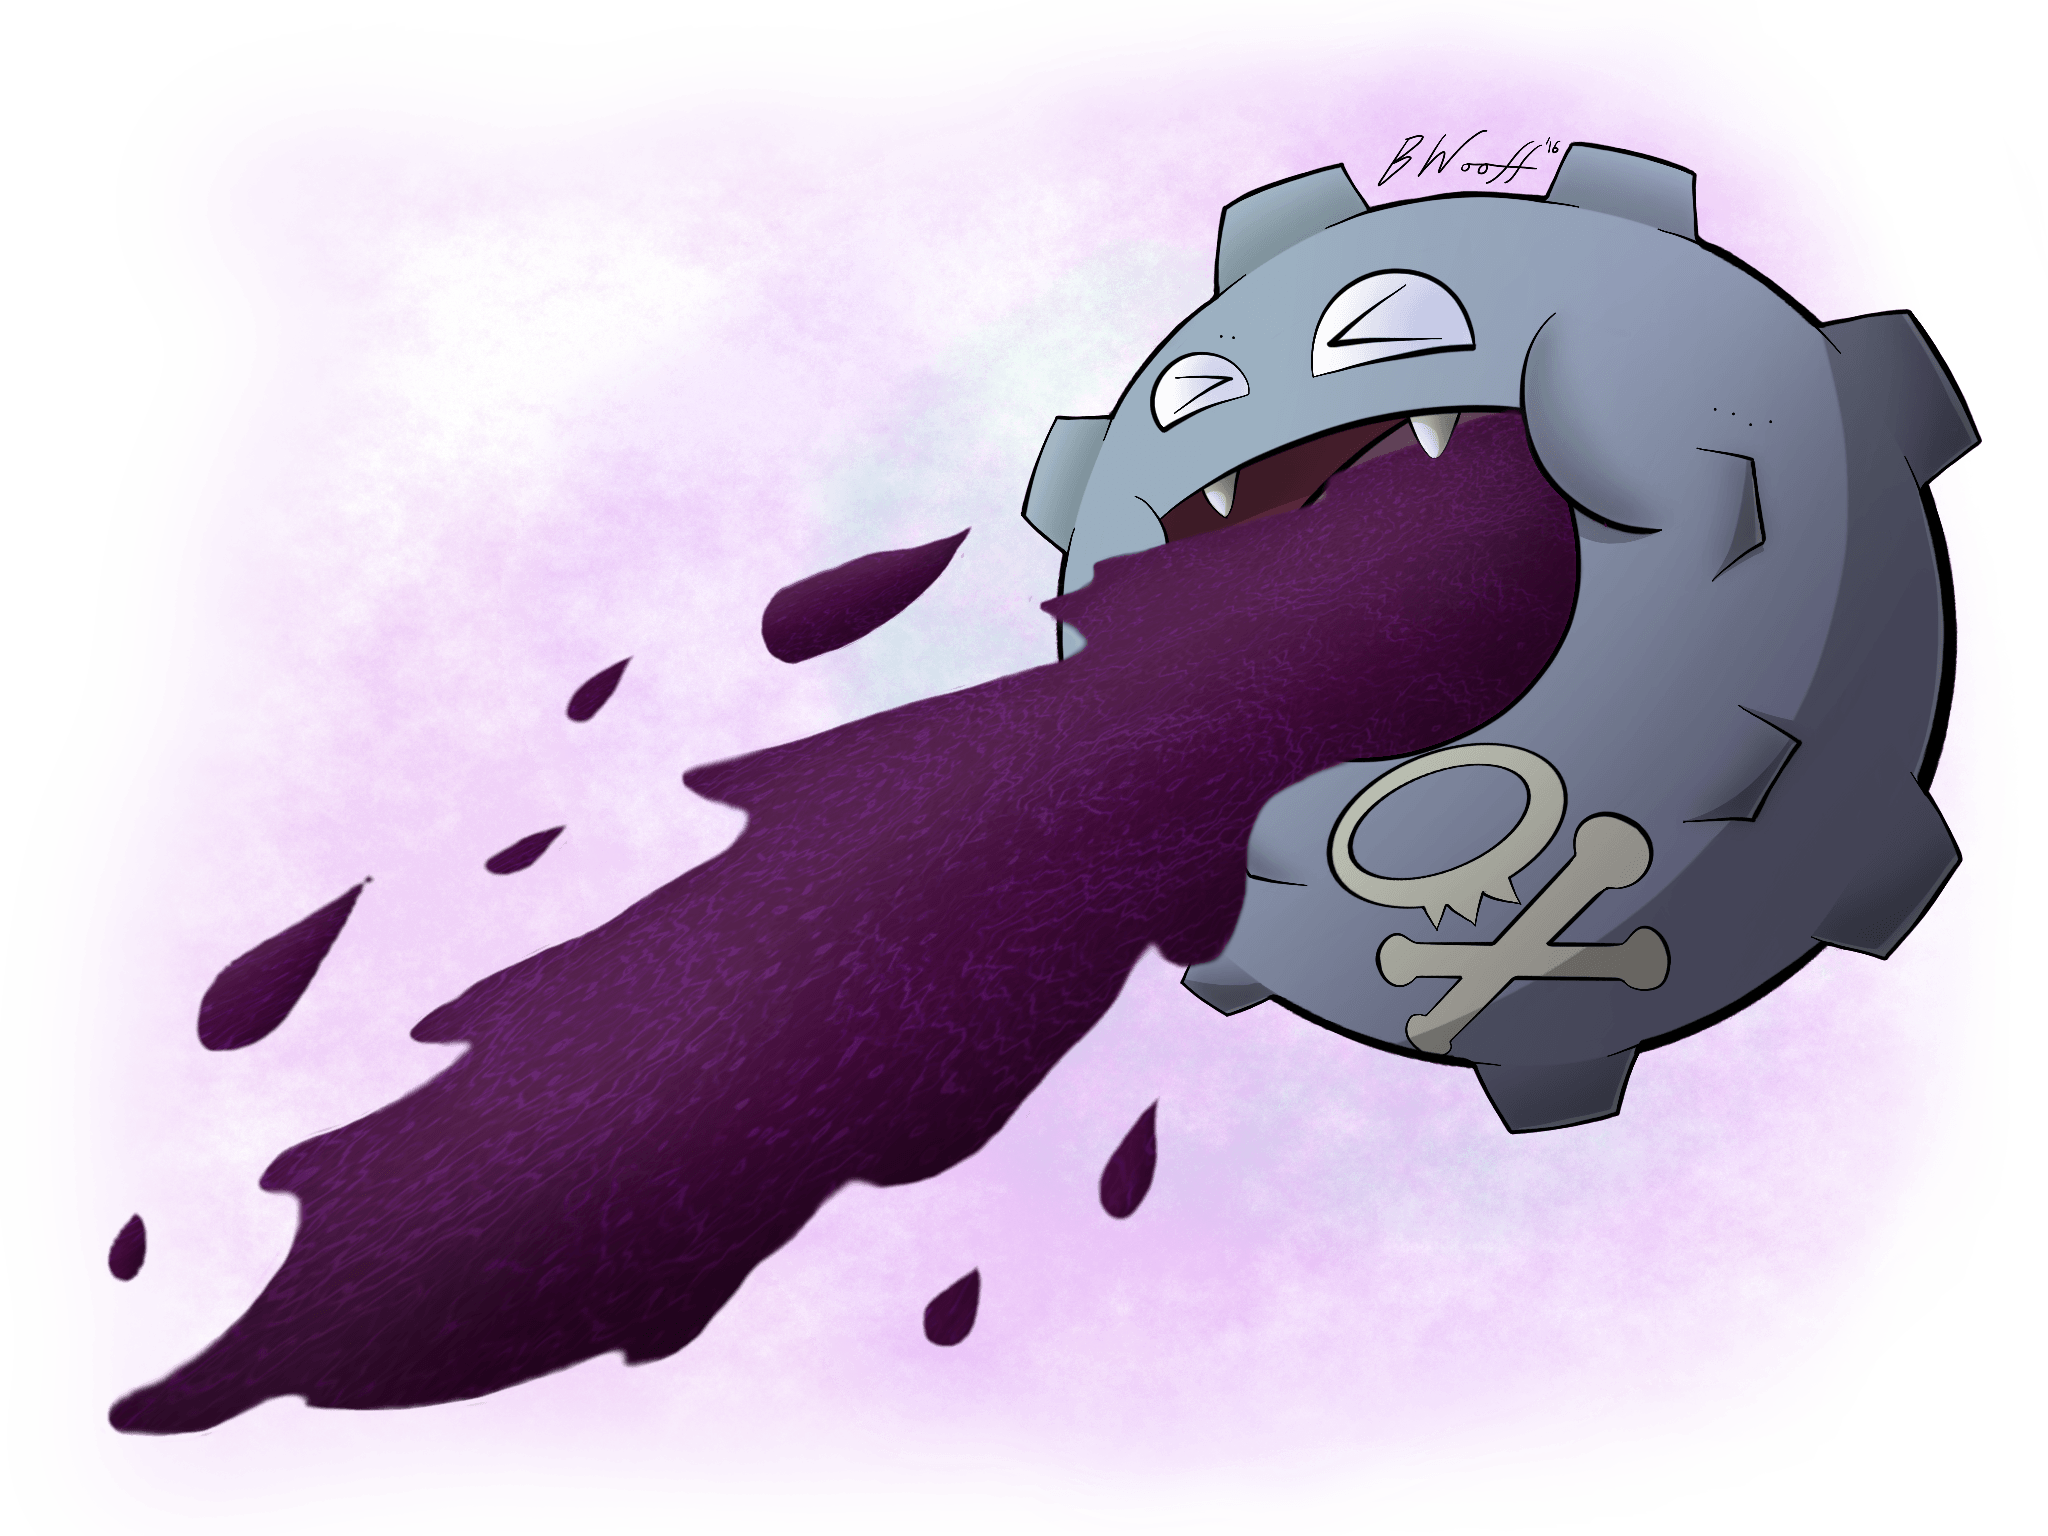 109 Koffing used Sludge and Poison Gas!